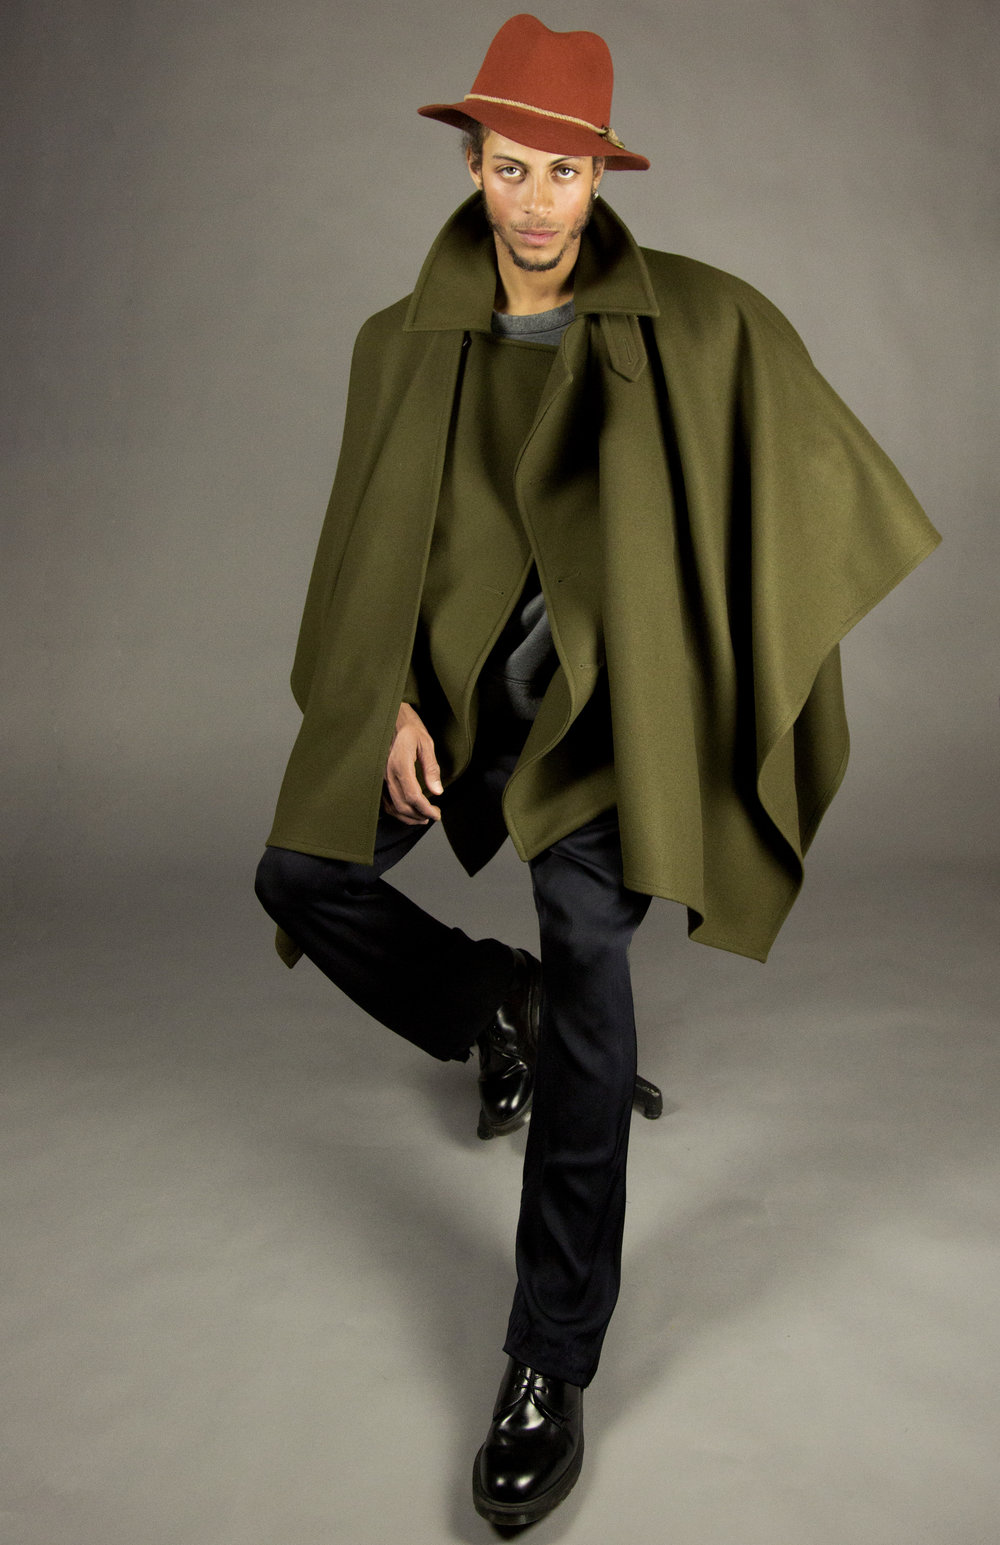 cloak 2 loden  square-cut blanket wrap with open front.  one size  made in america  100% italian felted wool